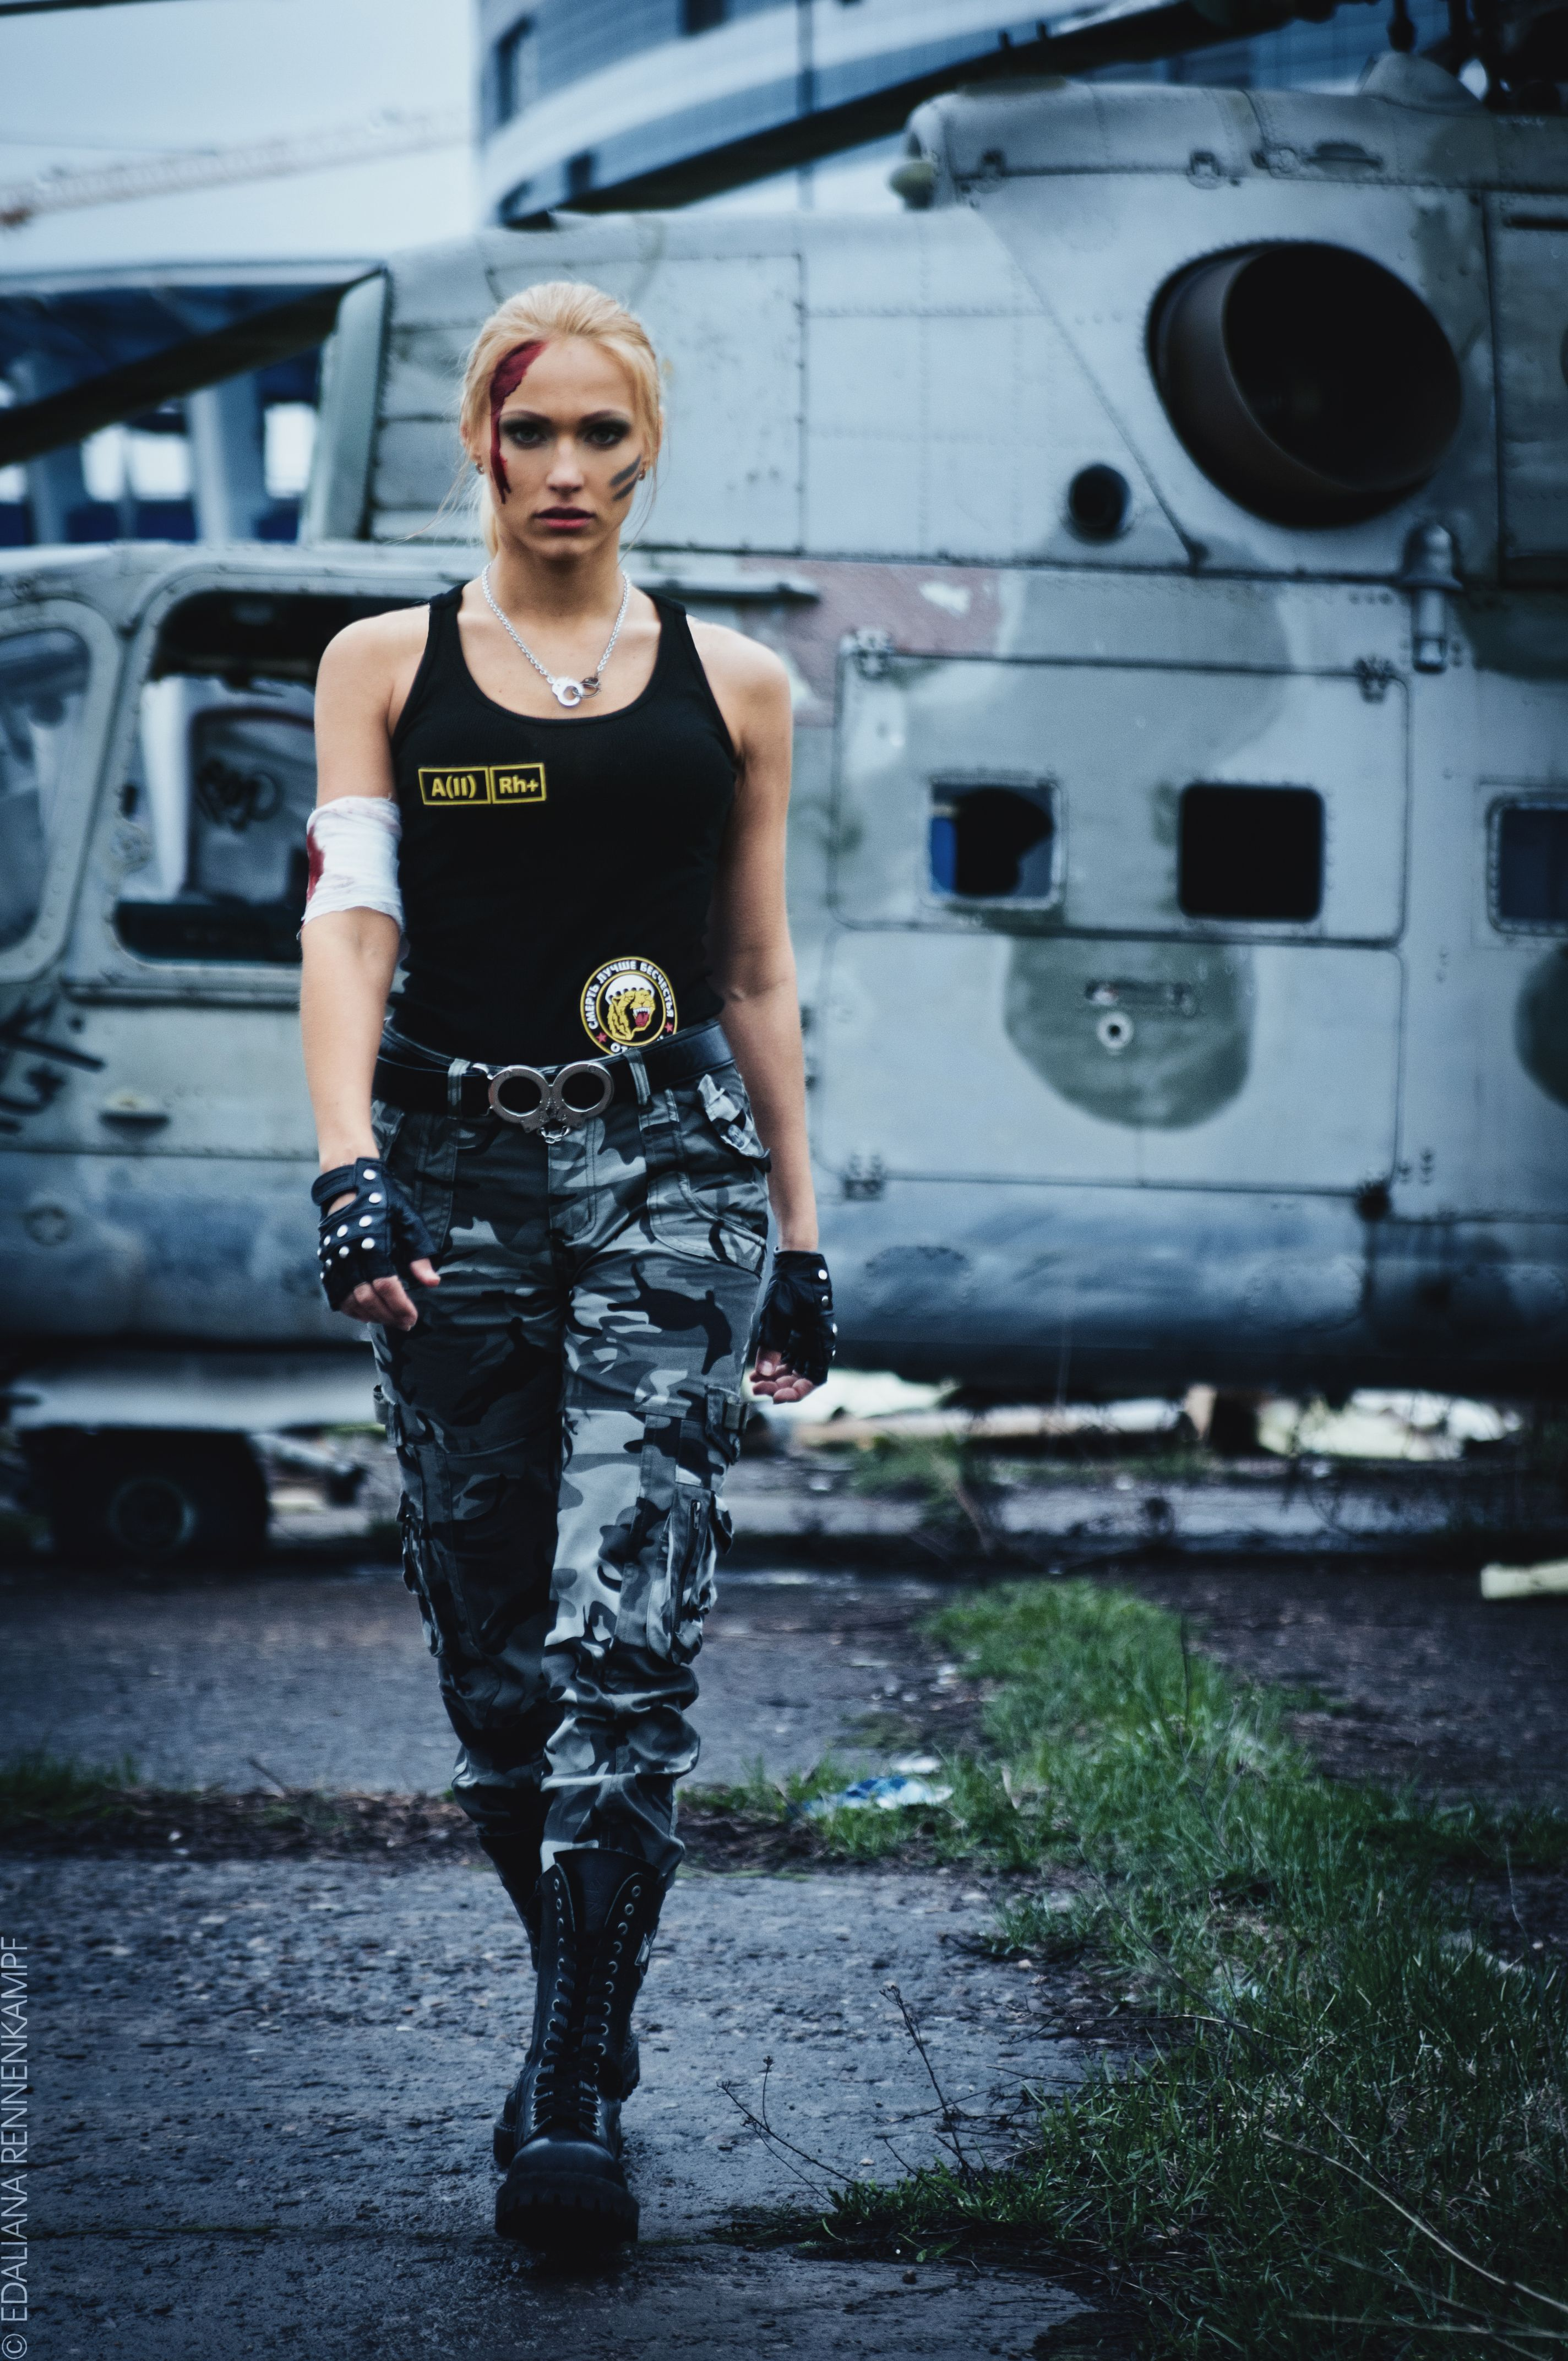 military combat sonya blade cosplay | other | Pinterest ... - photo#30